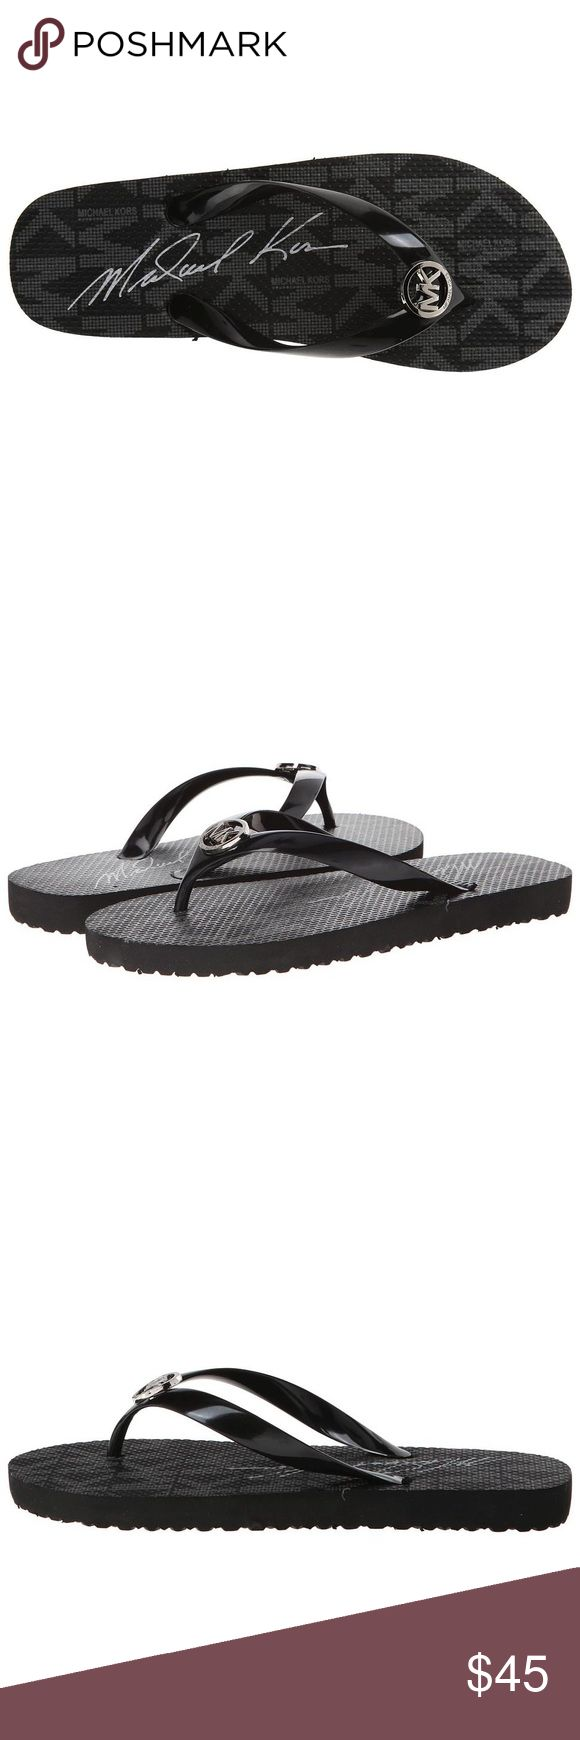 MK Michael Kors blk logo rubber flip flops Sandals 100% authentic! New in box, made in China. Size: 8, color: black, material: rubber MICHAEL Michael Kors Shoes Sandals